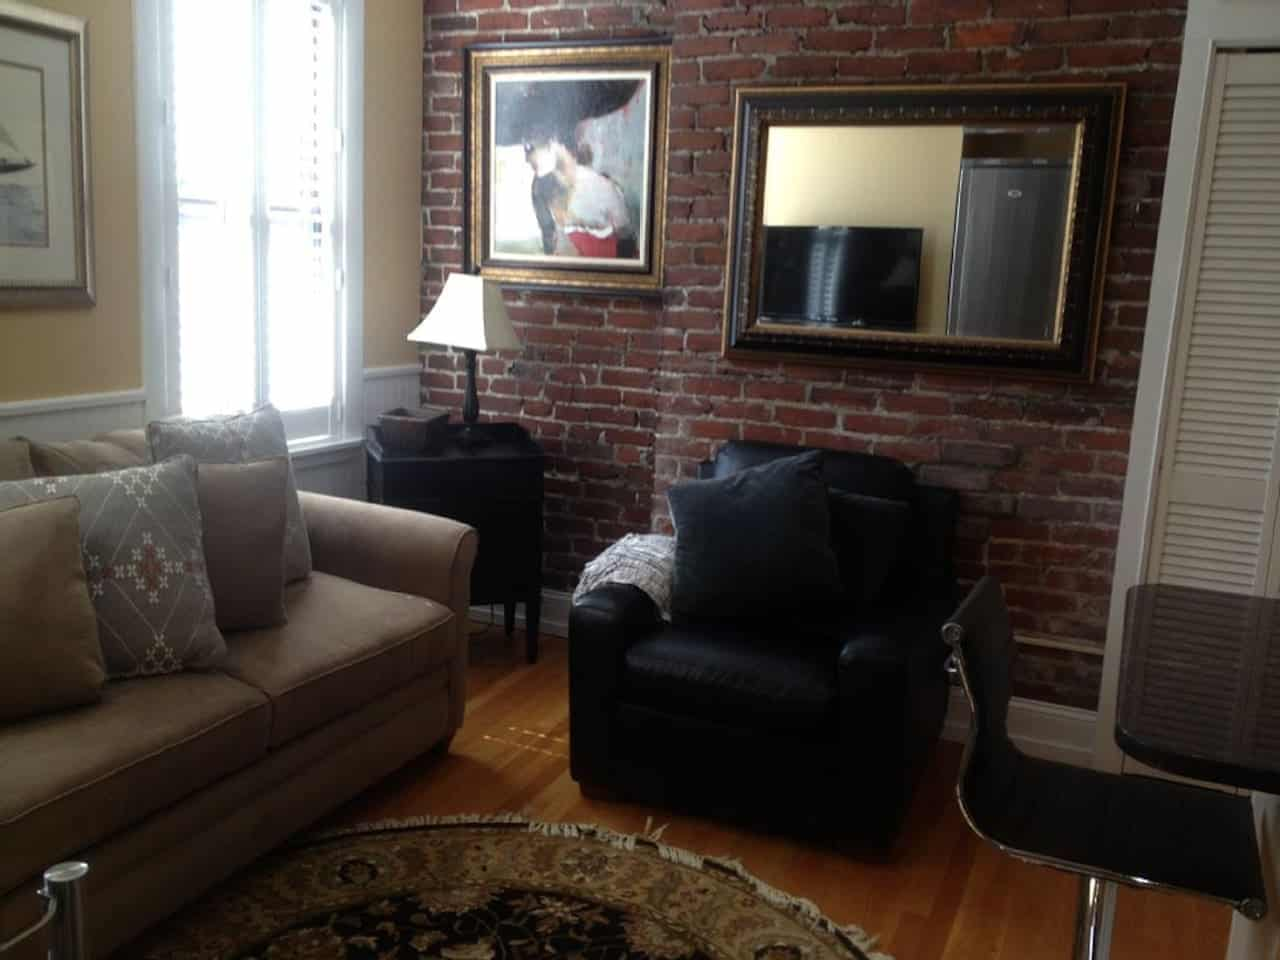 Image of Airbnb rental in Boston, Massachusetts